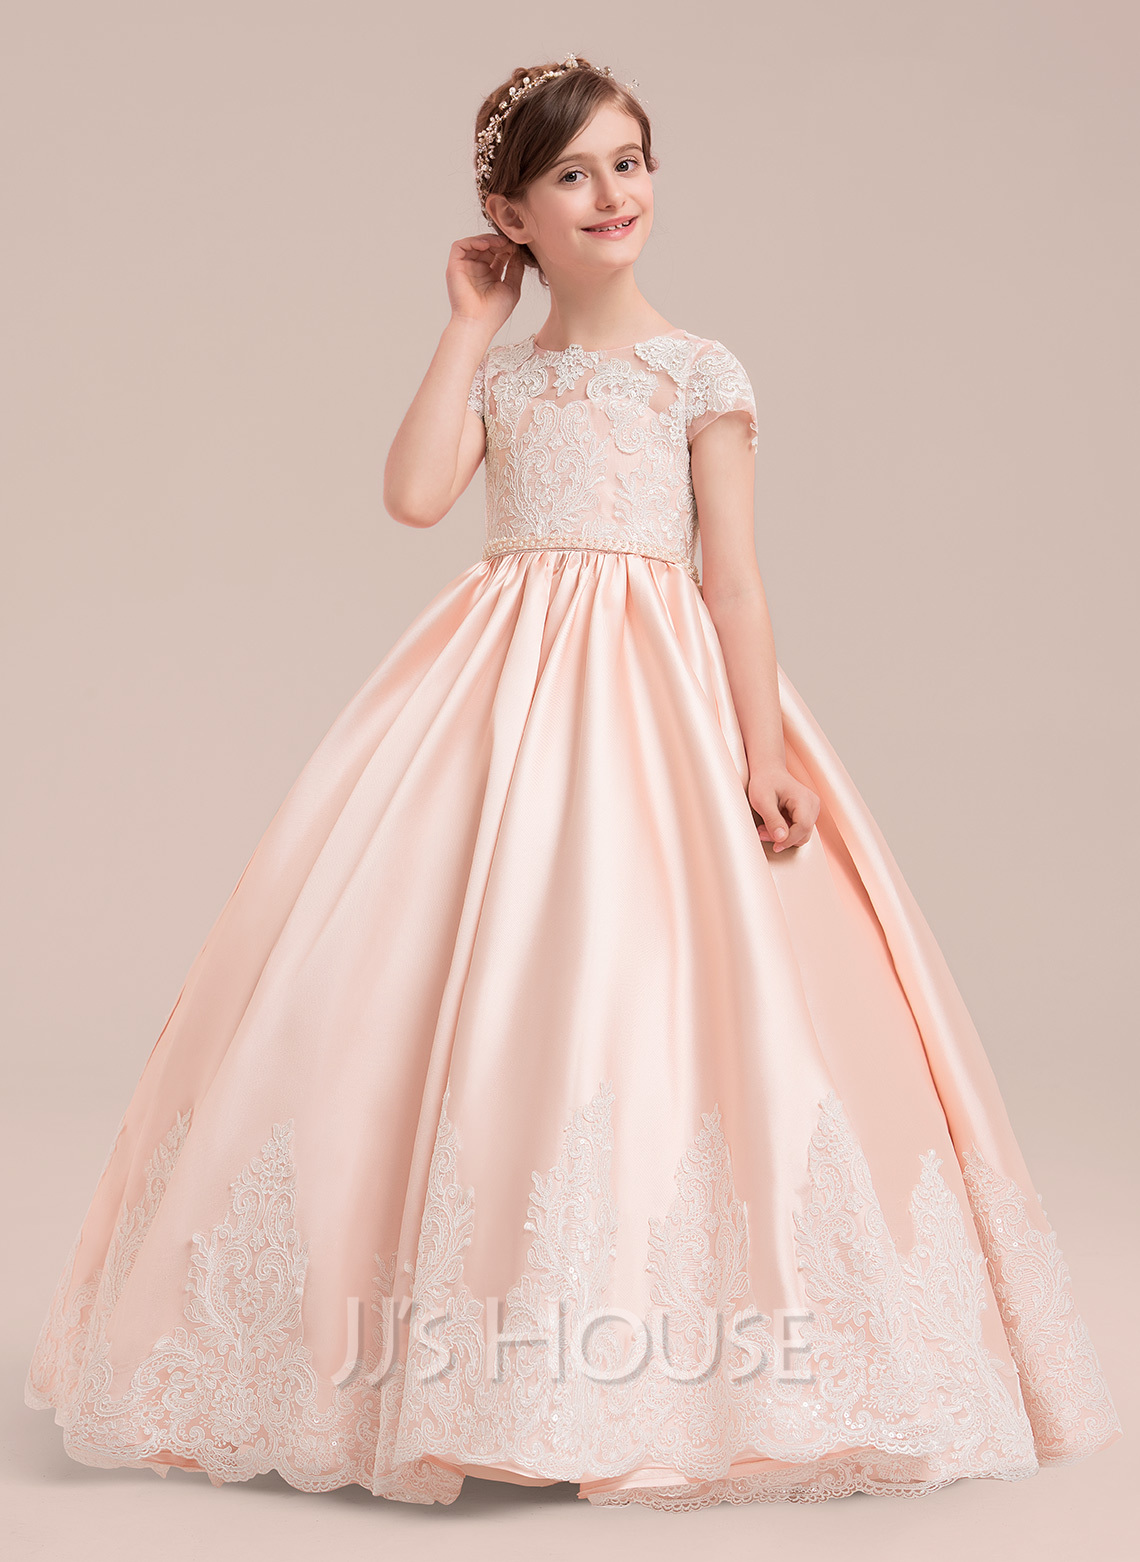 a094b99a3a8 Ball Gown Floor-length Flower Girl Dress - Satin Tulle Lace Short Sleeves.  Loading zoom